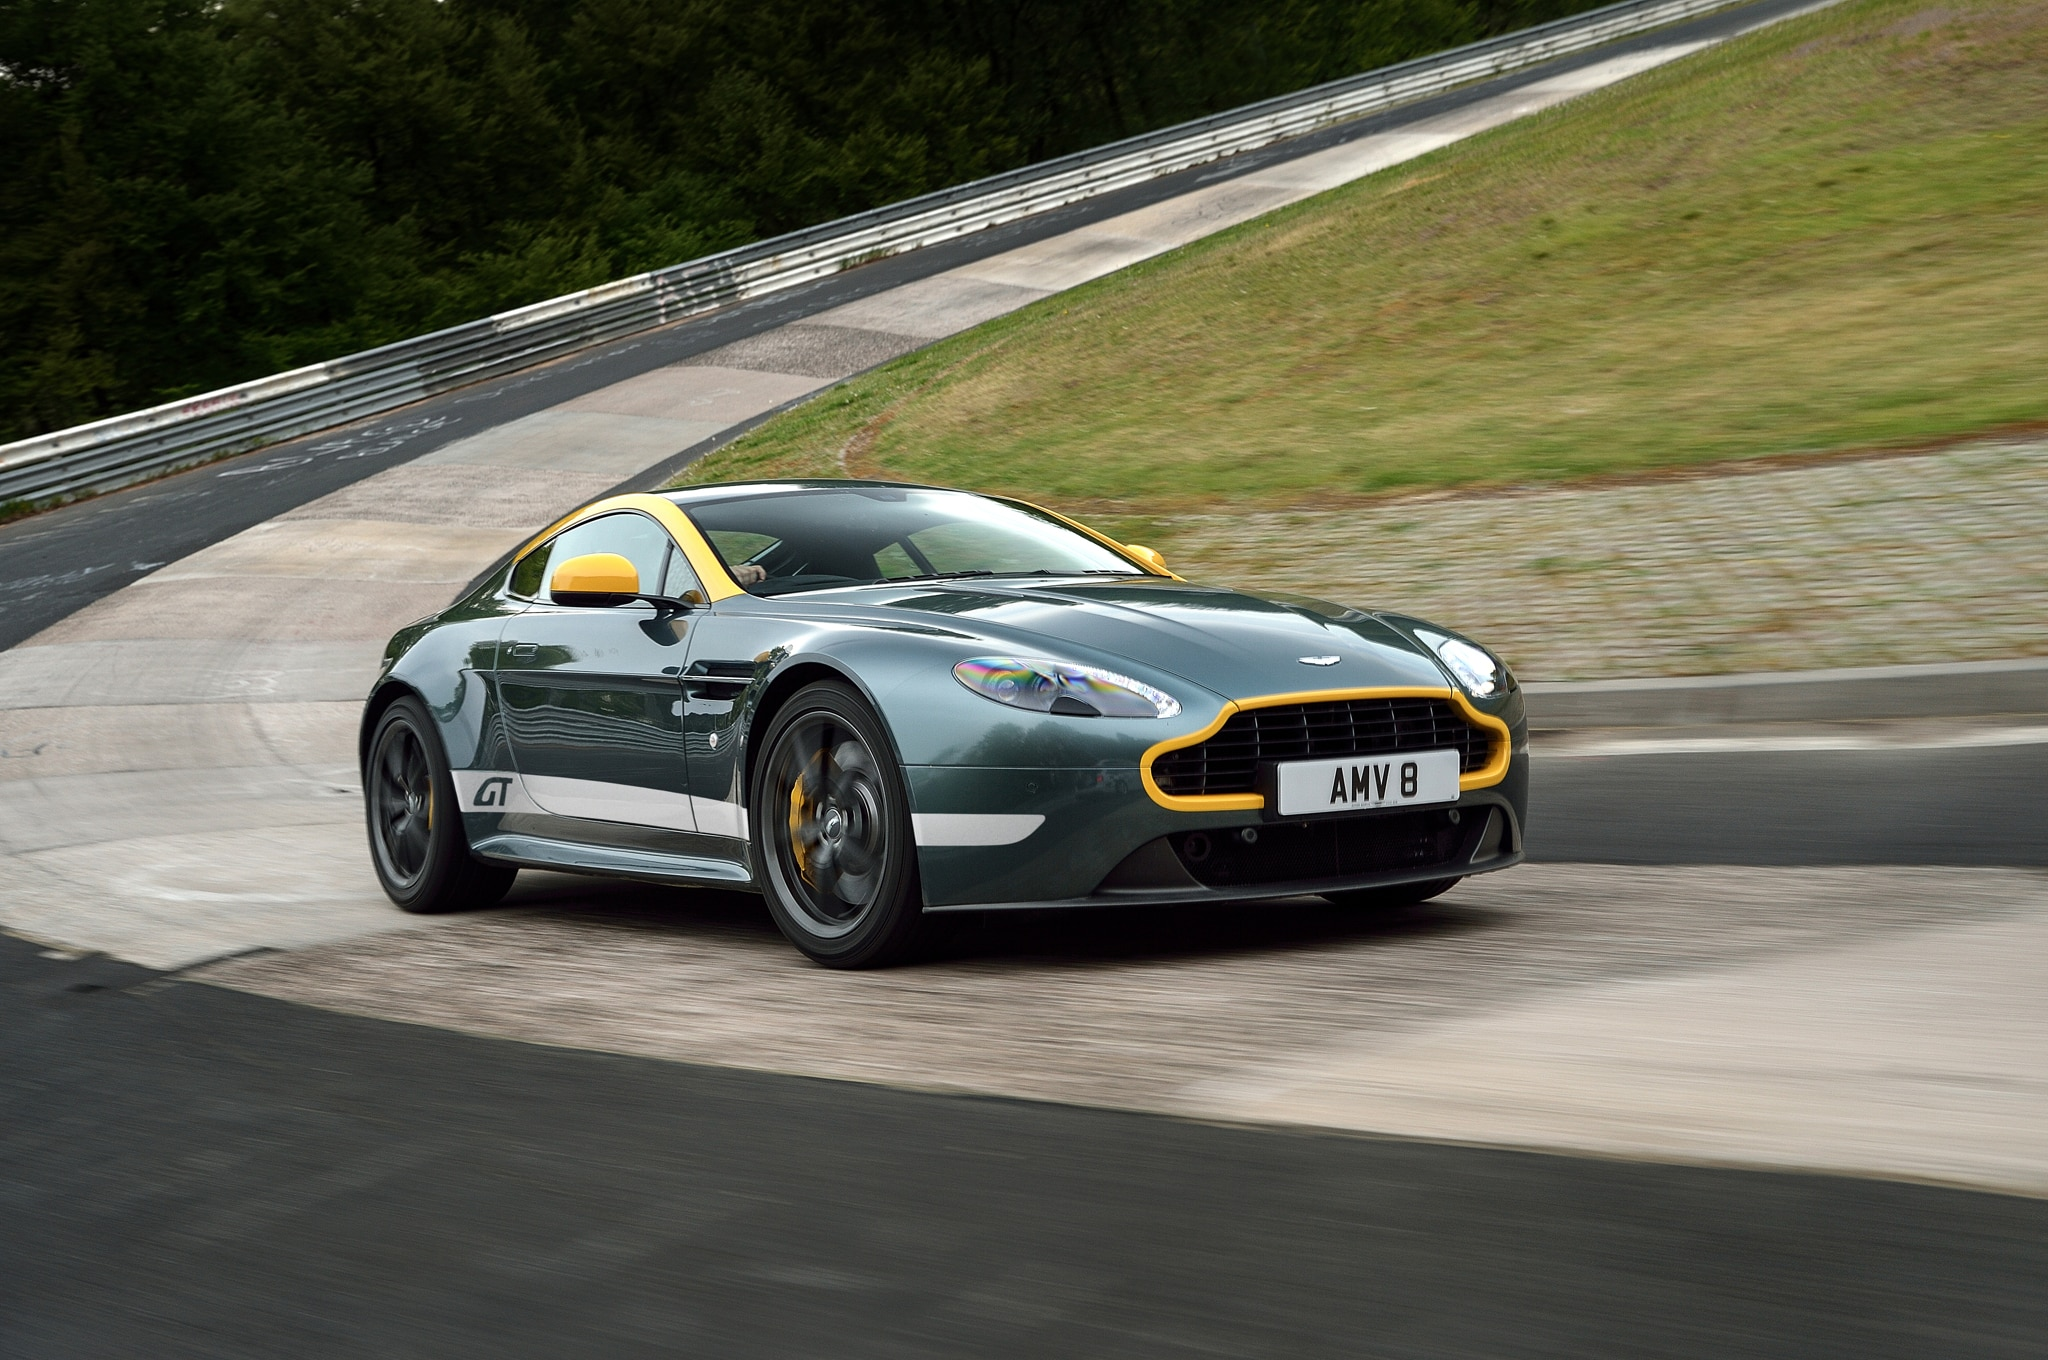 2015 Aston Martin V8 Vantage GT Front Three Quarter In Motion 06